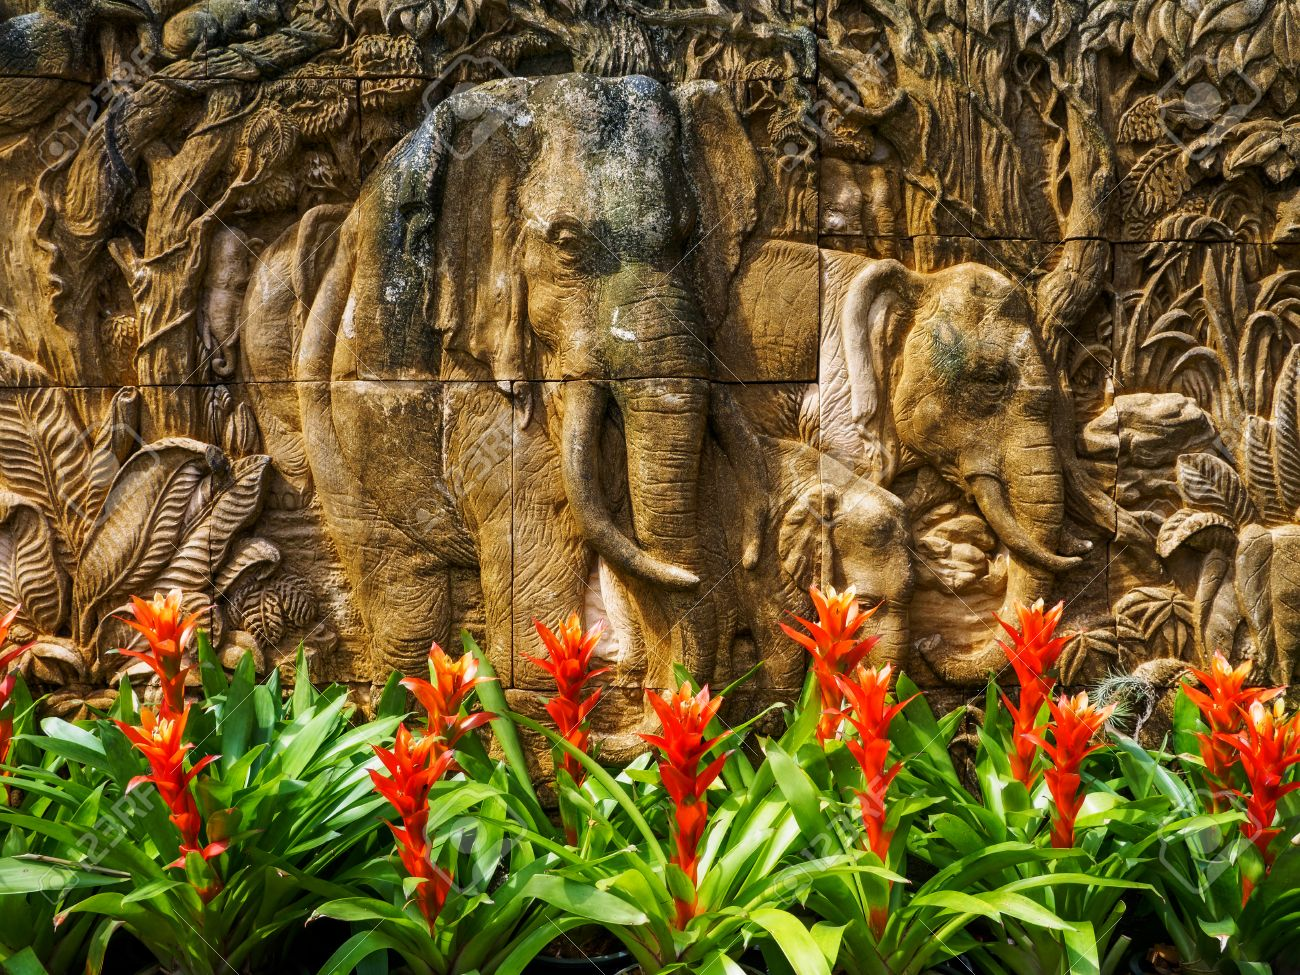 Stone Low Relief In The Summer Garden. Jungle Theme Stock Photo ...